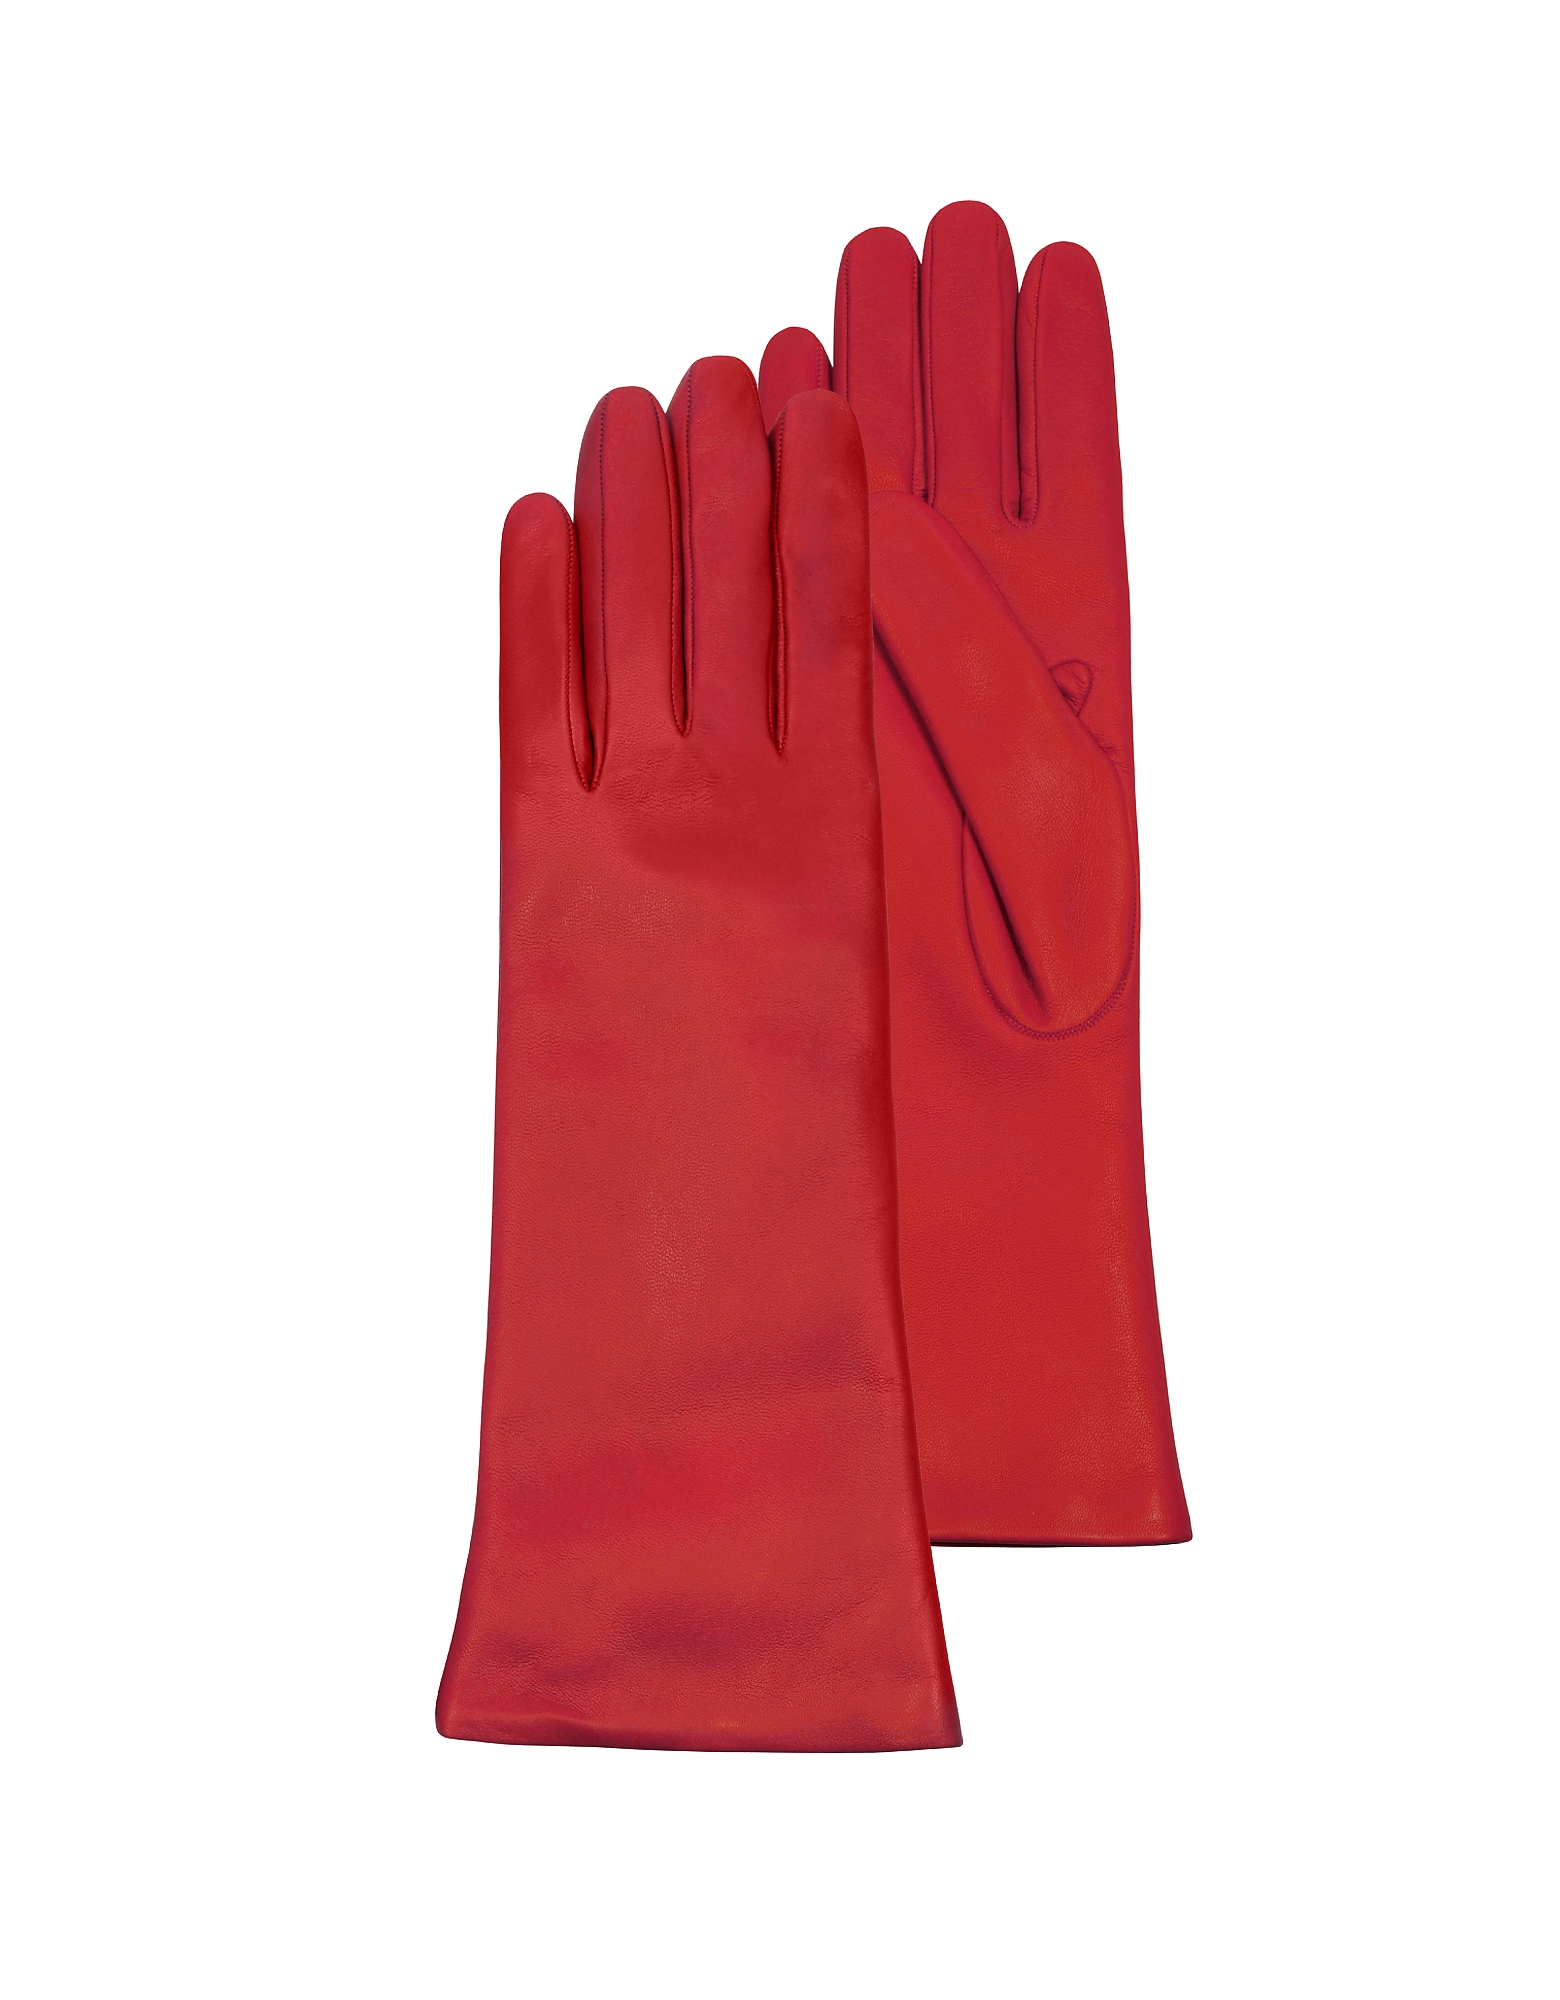 1940s Accessories: Belts, Gloves, Head Scarf Forzieri  Womens Gloves Red Leather Womens Long Gloves wCashmere Lining $178.00 AT vintagedancer.com